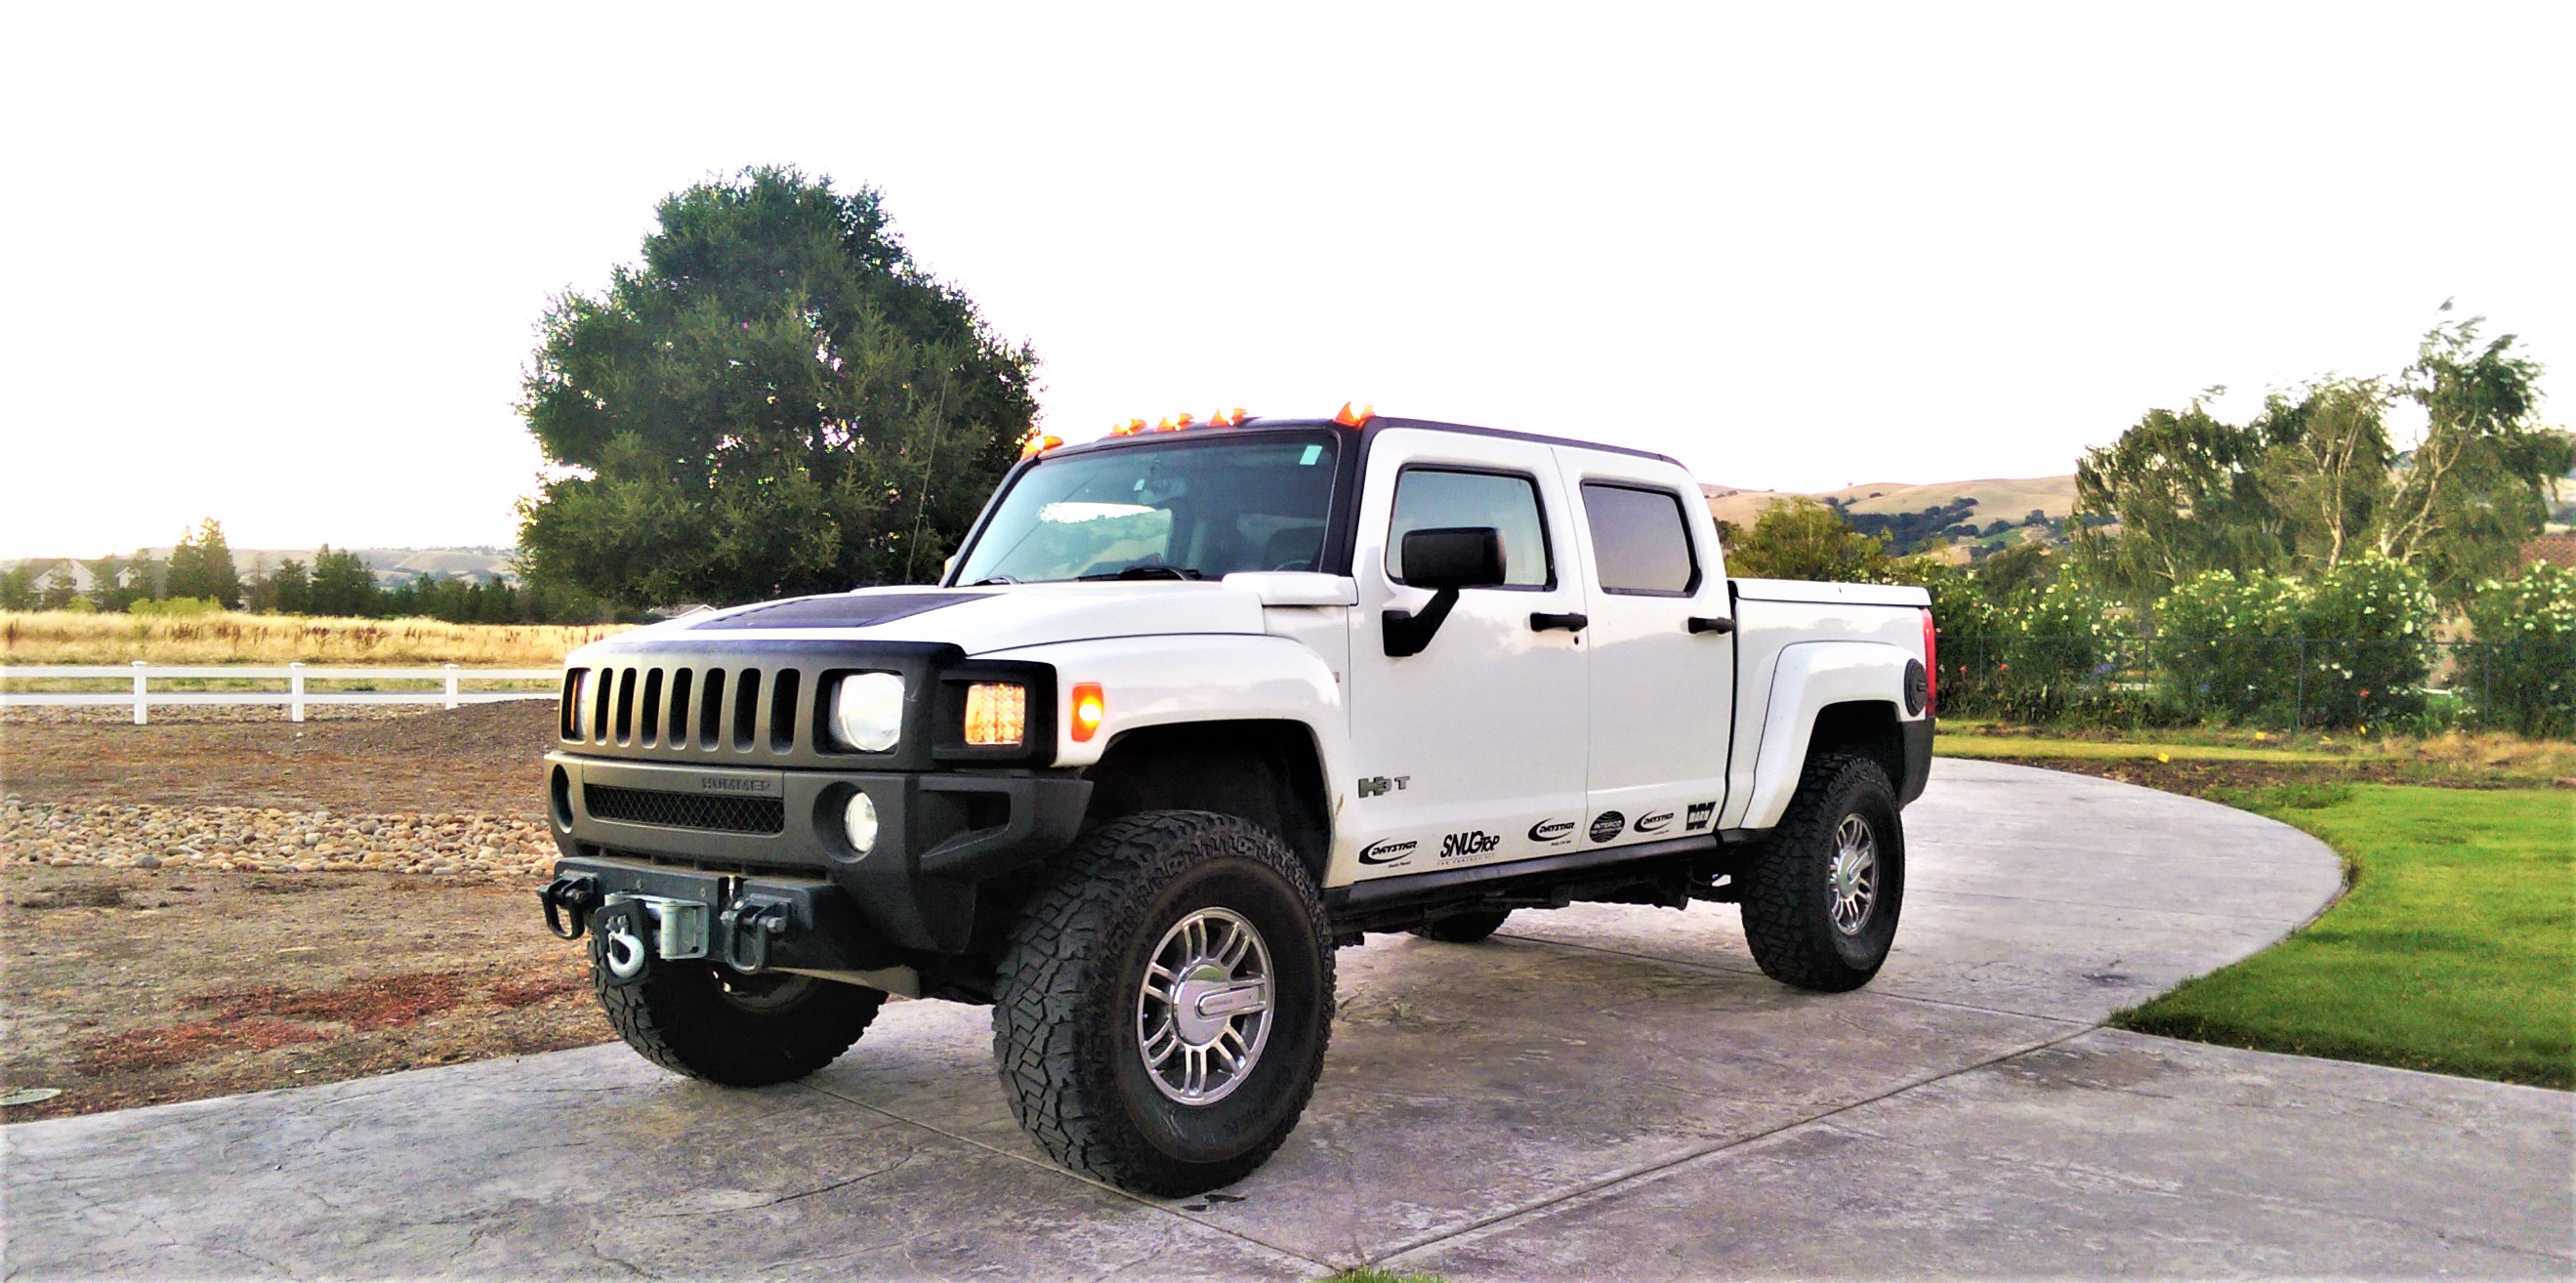 Hummer H3T Alpha Daughter s 1st Ride Hummer Forums Enthusiast